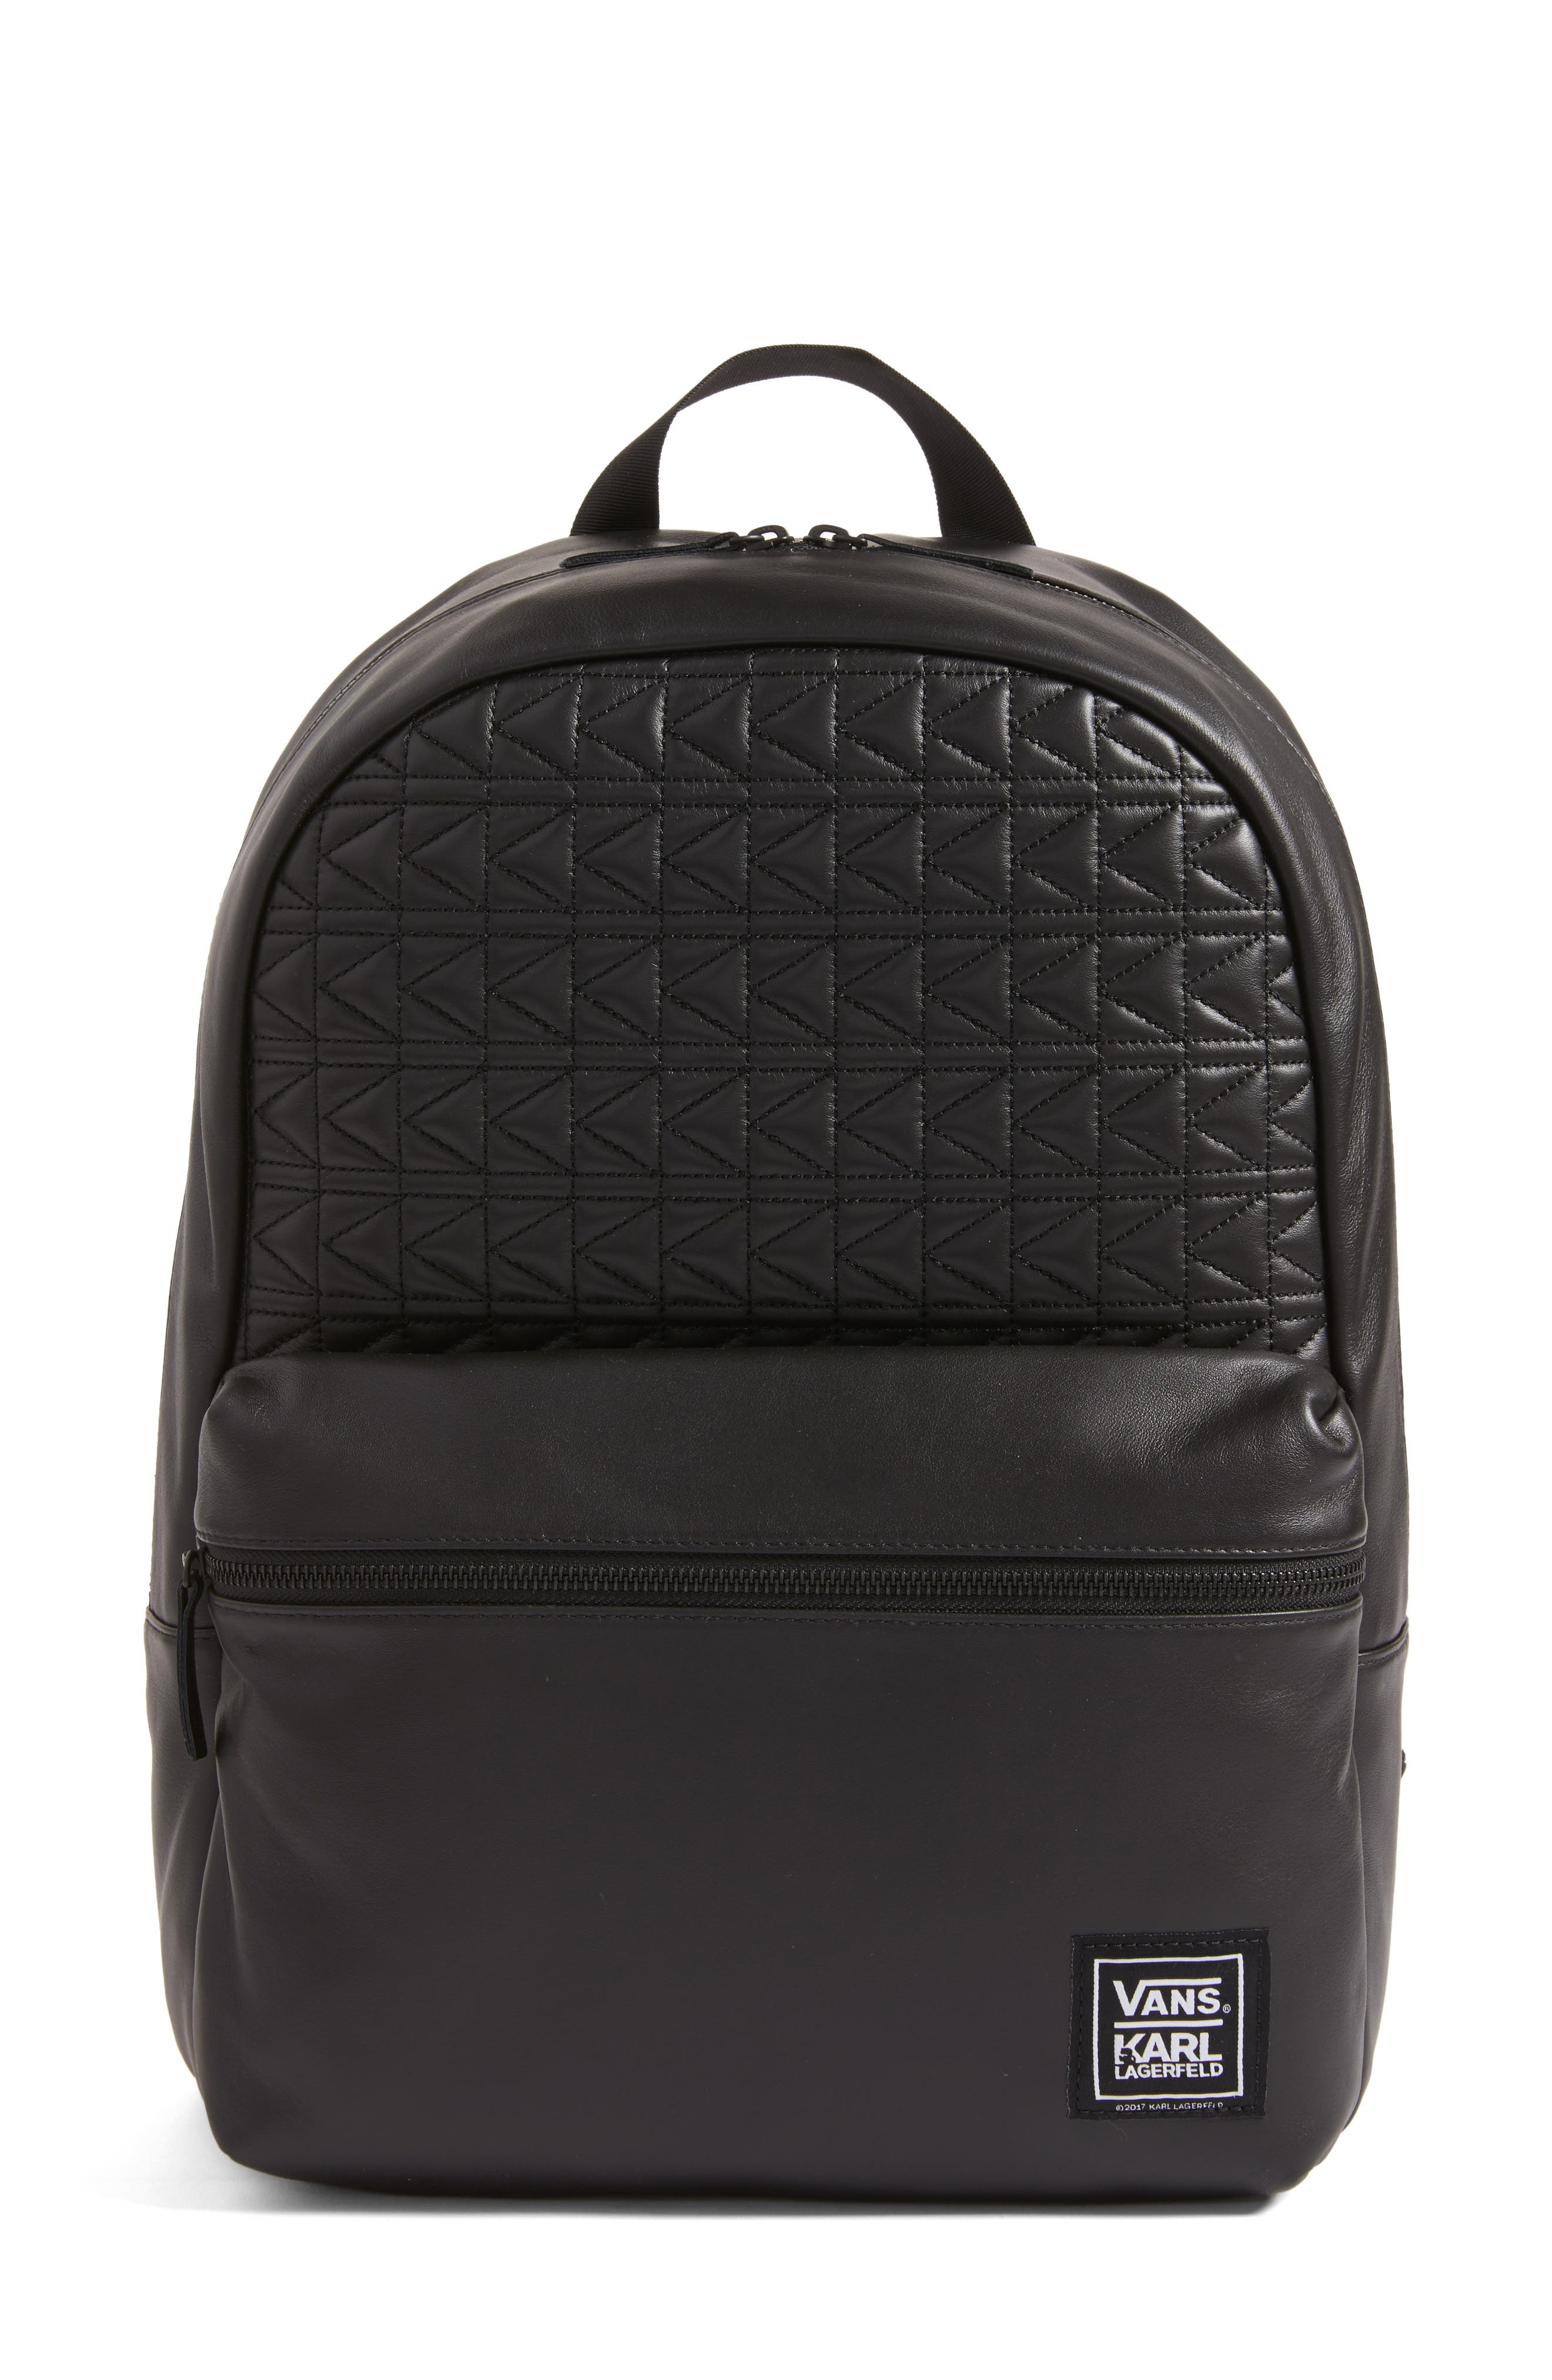 Main Image - Vans x KARL LAGERFELD Quilted Leather Backpack